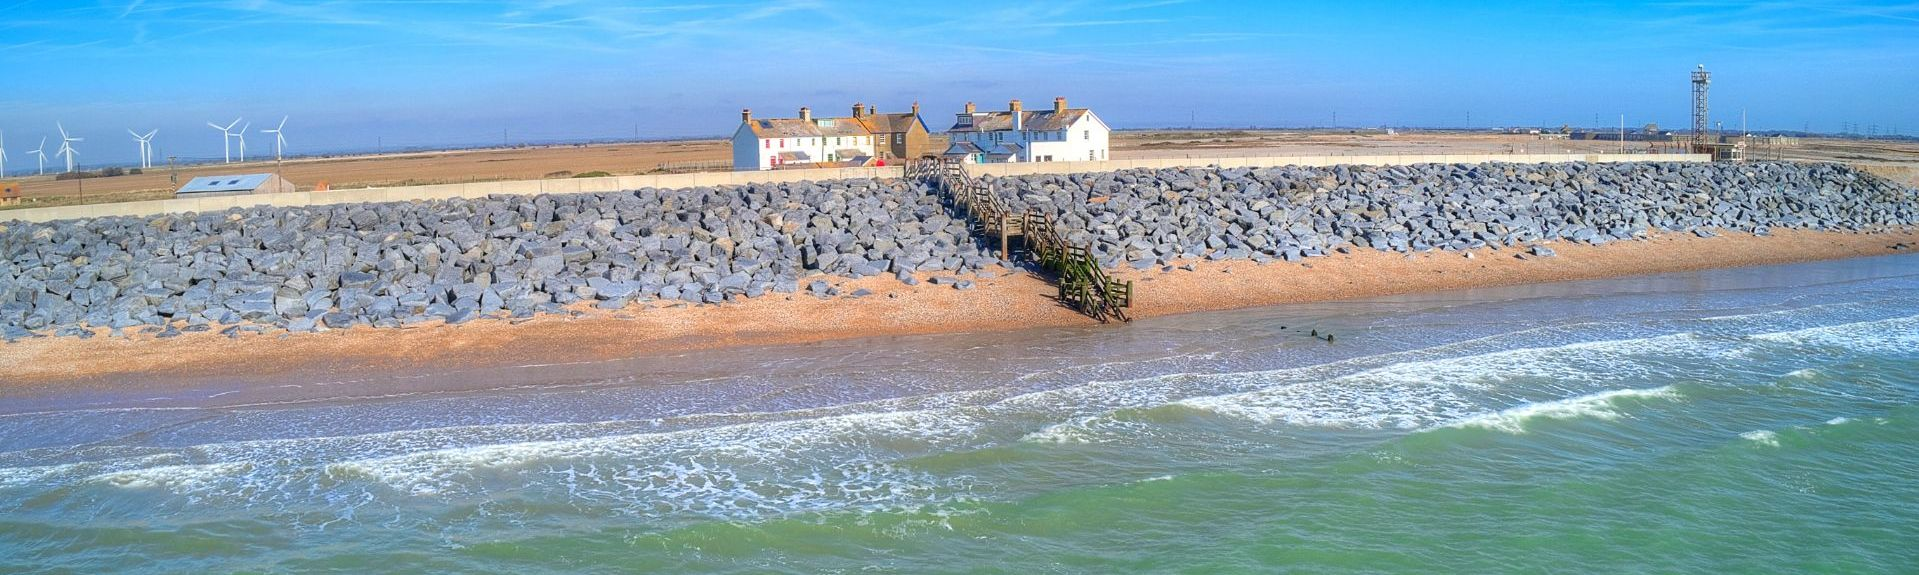 Dymchurch, Kent, UK